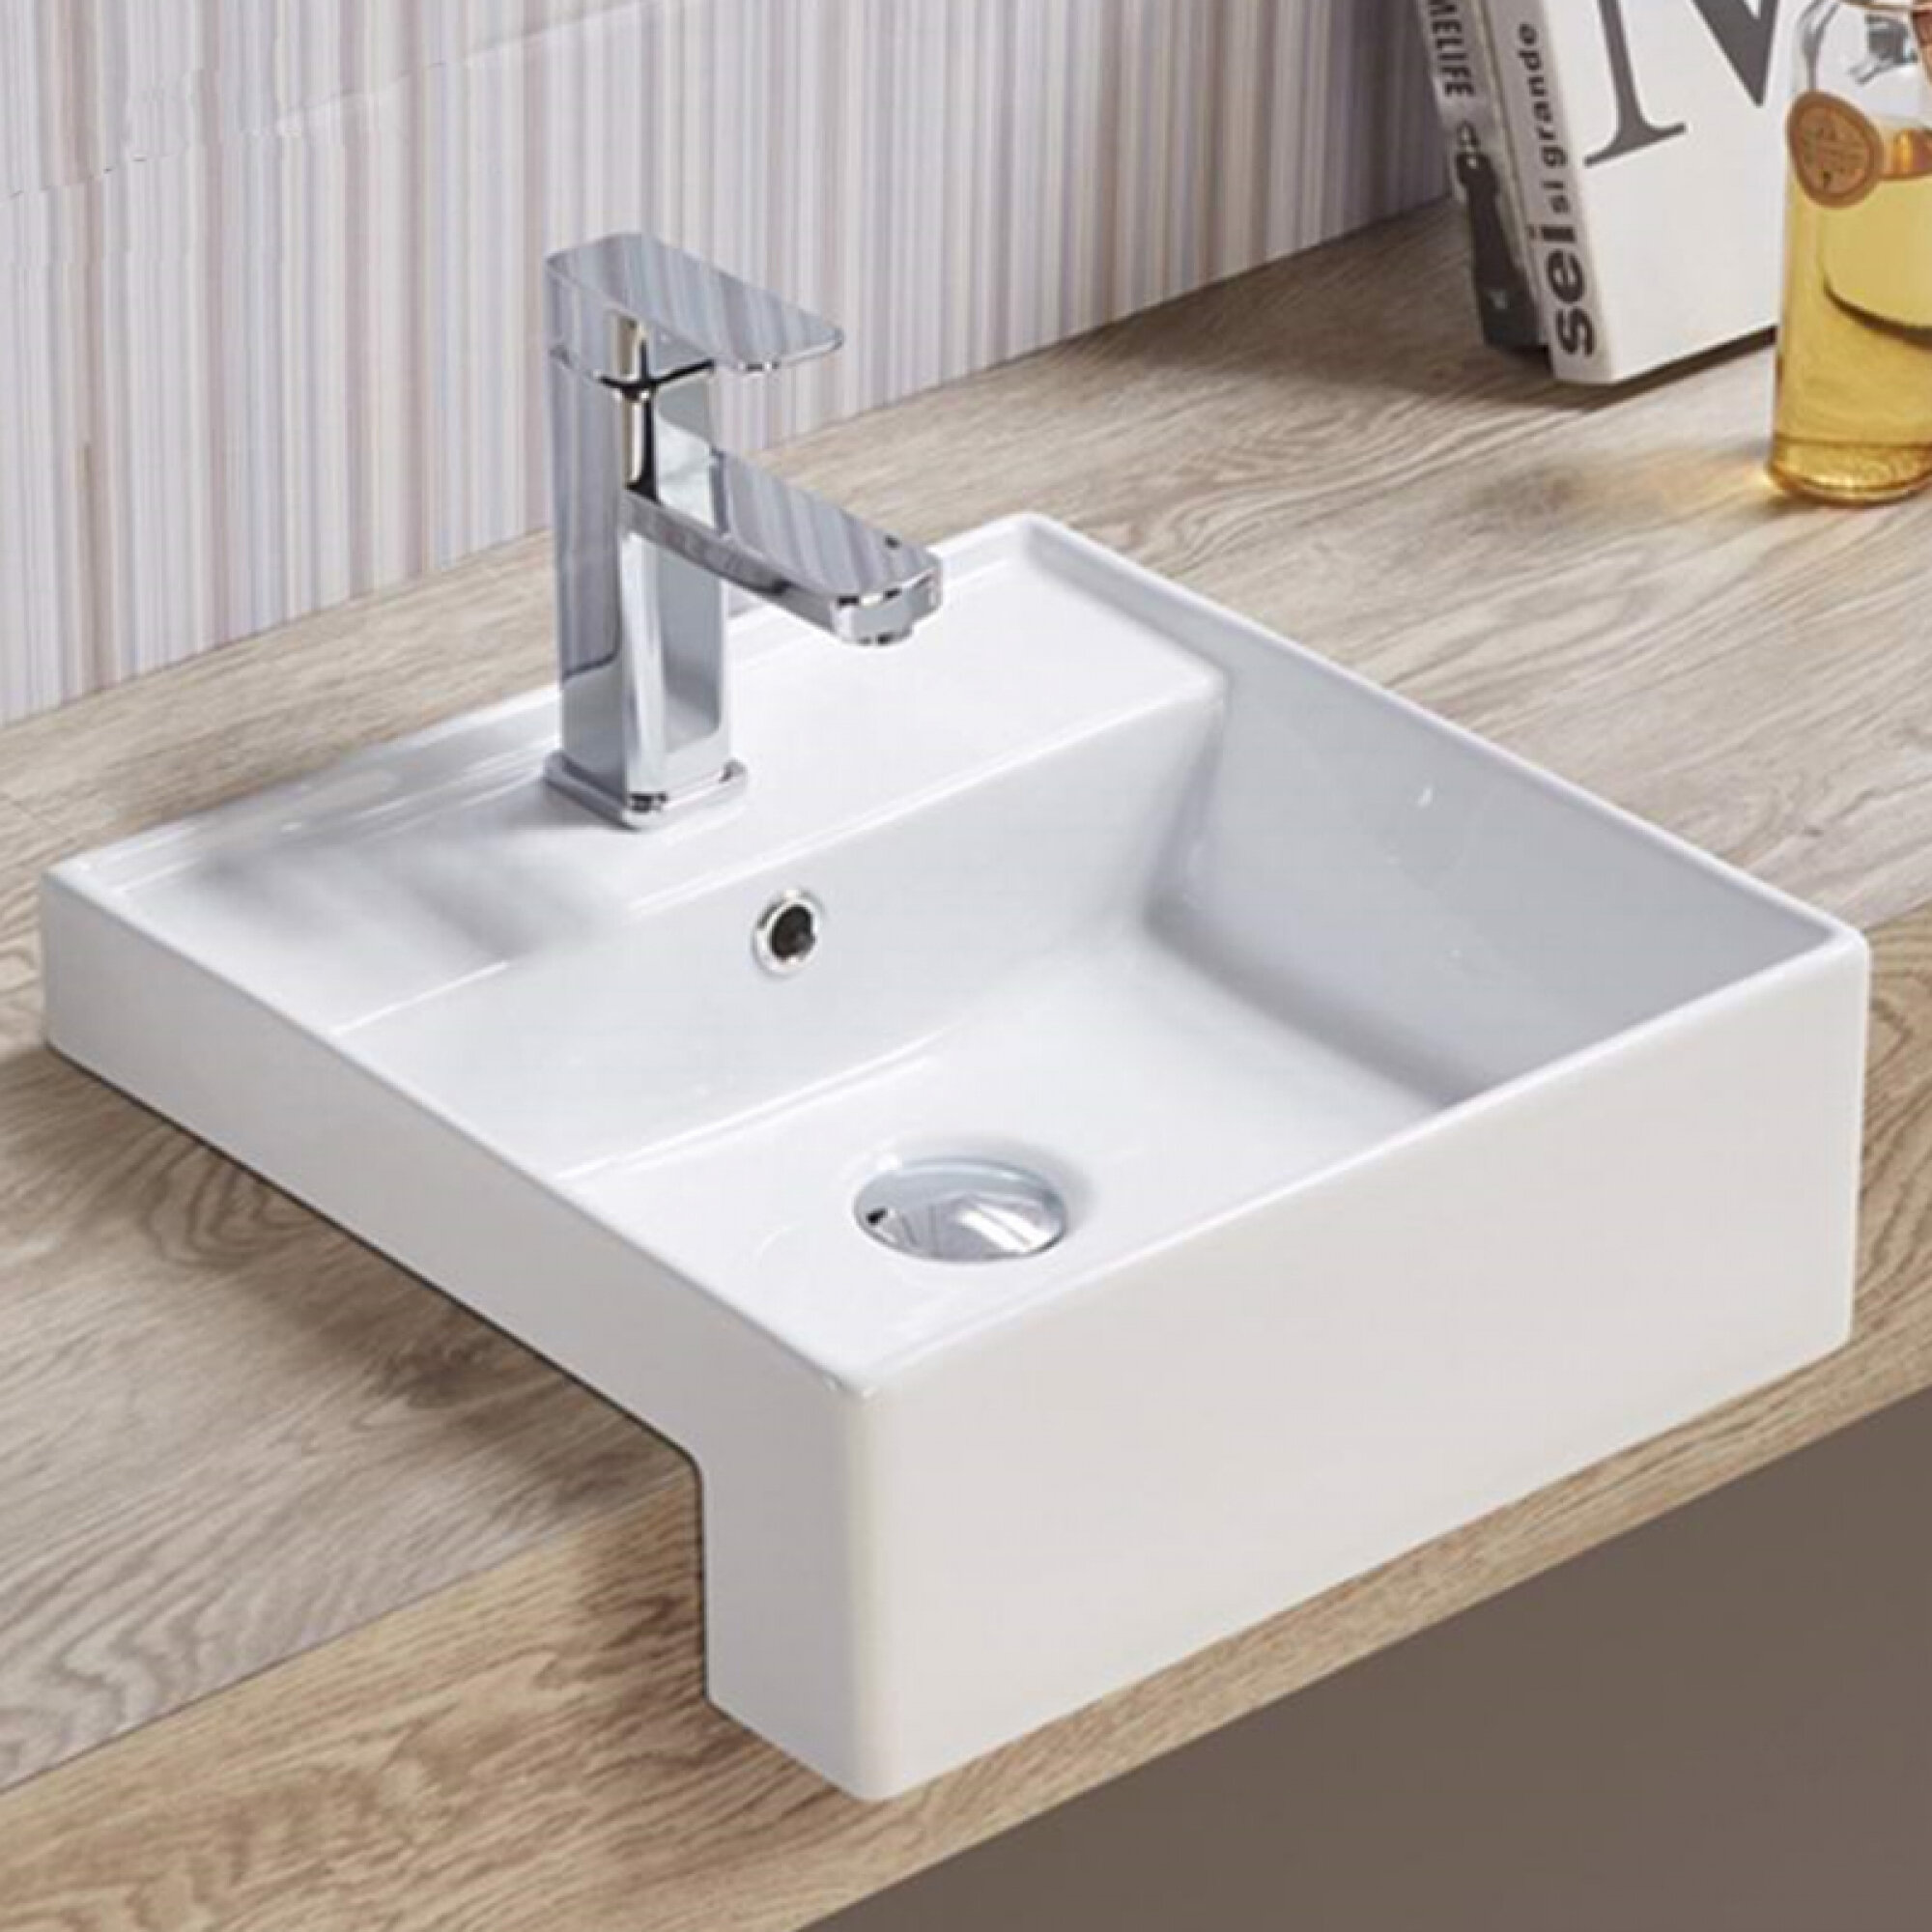 American Imaginations Semi Recessed For 1 Hole Center Drilling Ceramic Square Vessel Bathroom Sink With Overflow Wayfair